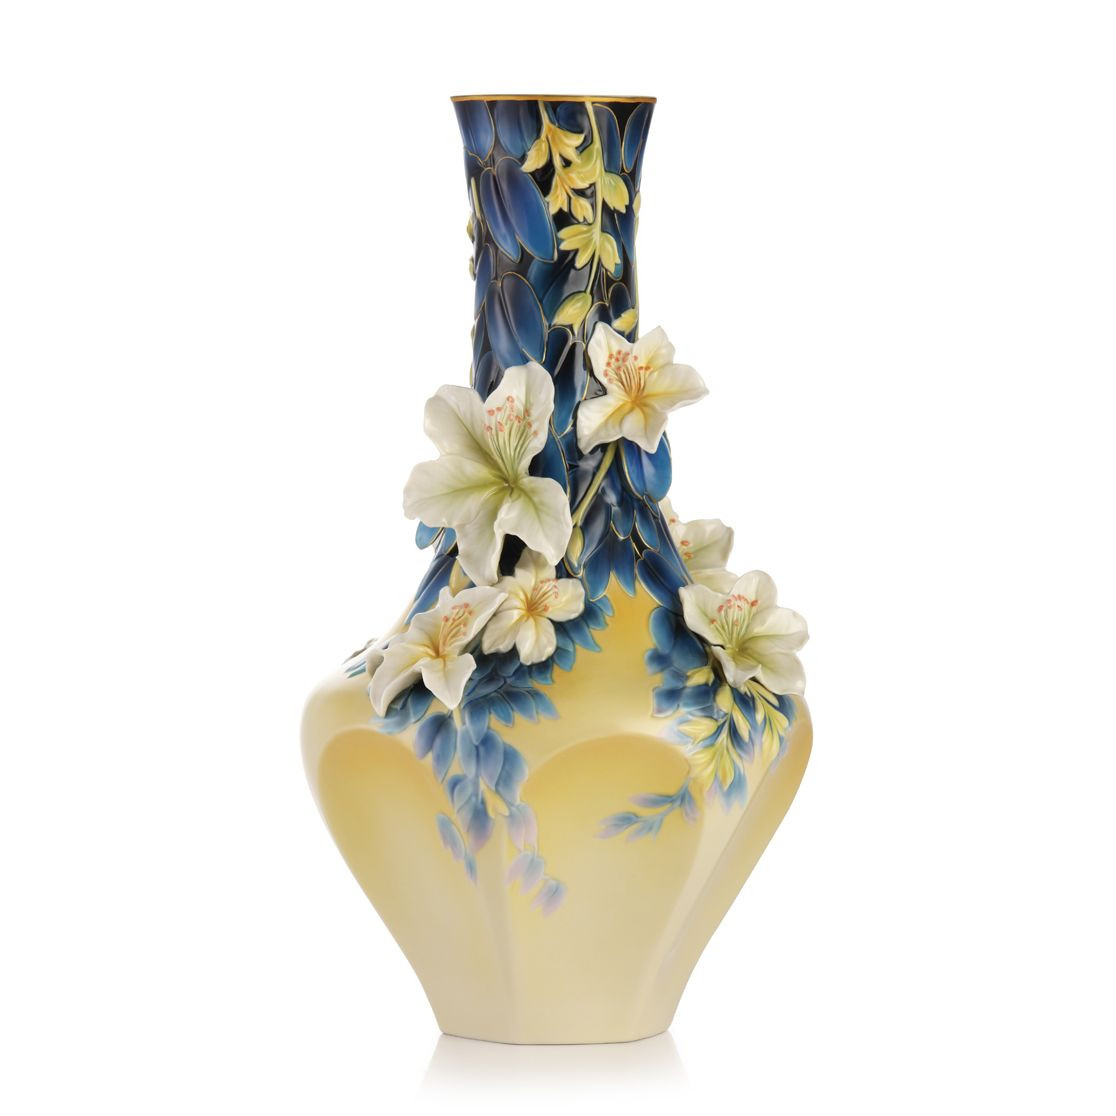 Fine China Vase Of Franz Collection Porcelain Hong Kong orchid Tree Vase Limited for Franz Collection Porcelain Hong Kong orchid Tree Vase Limited Edition 2000